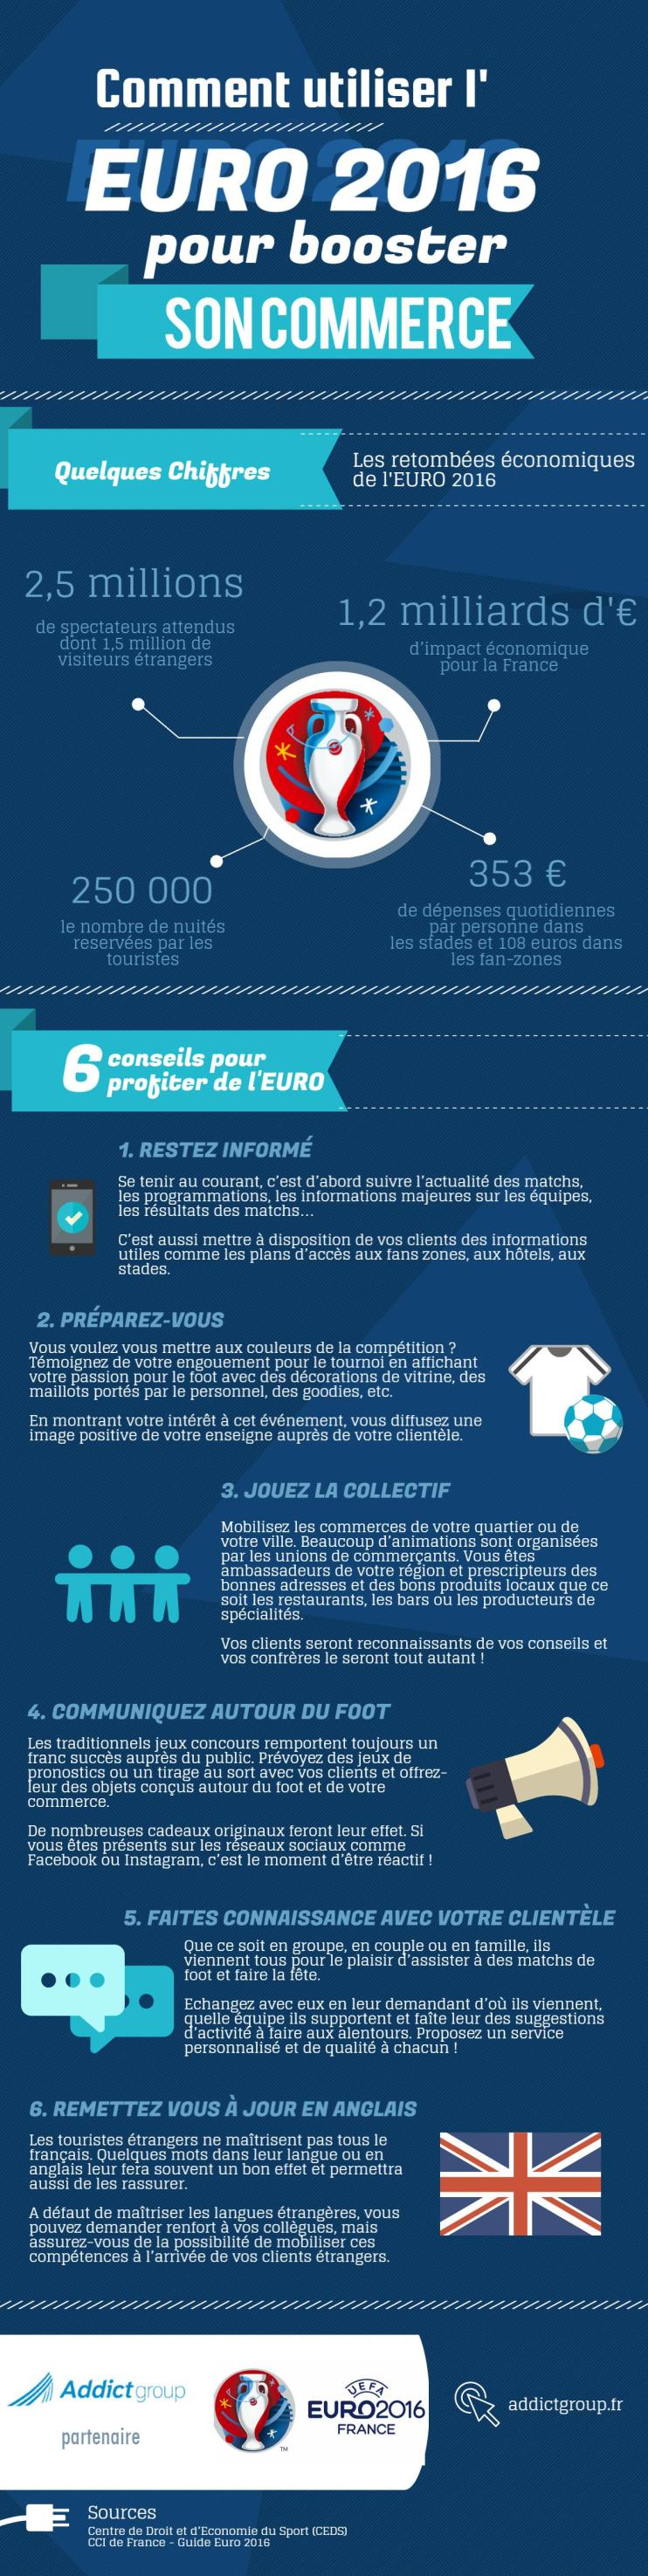 Infographie euro 2016